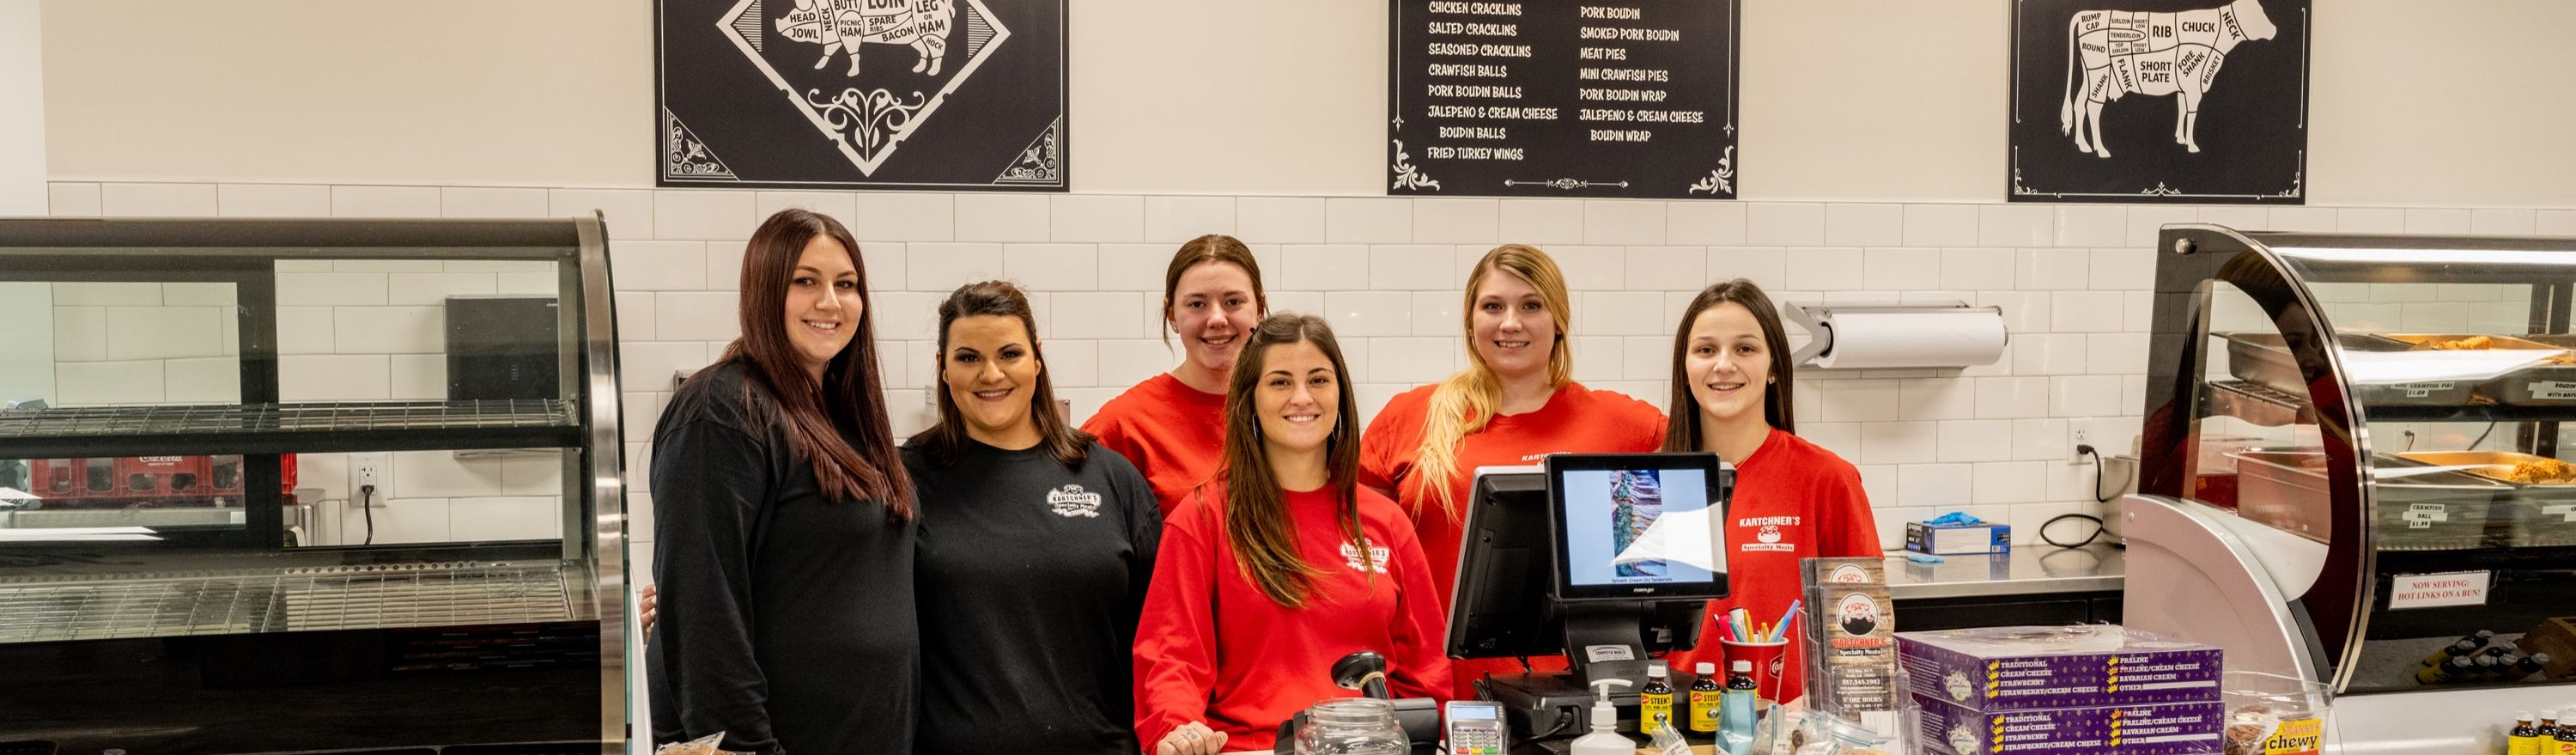 Kartchner's employees grouped behind the counter